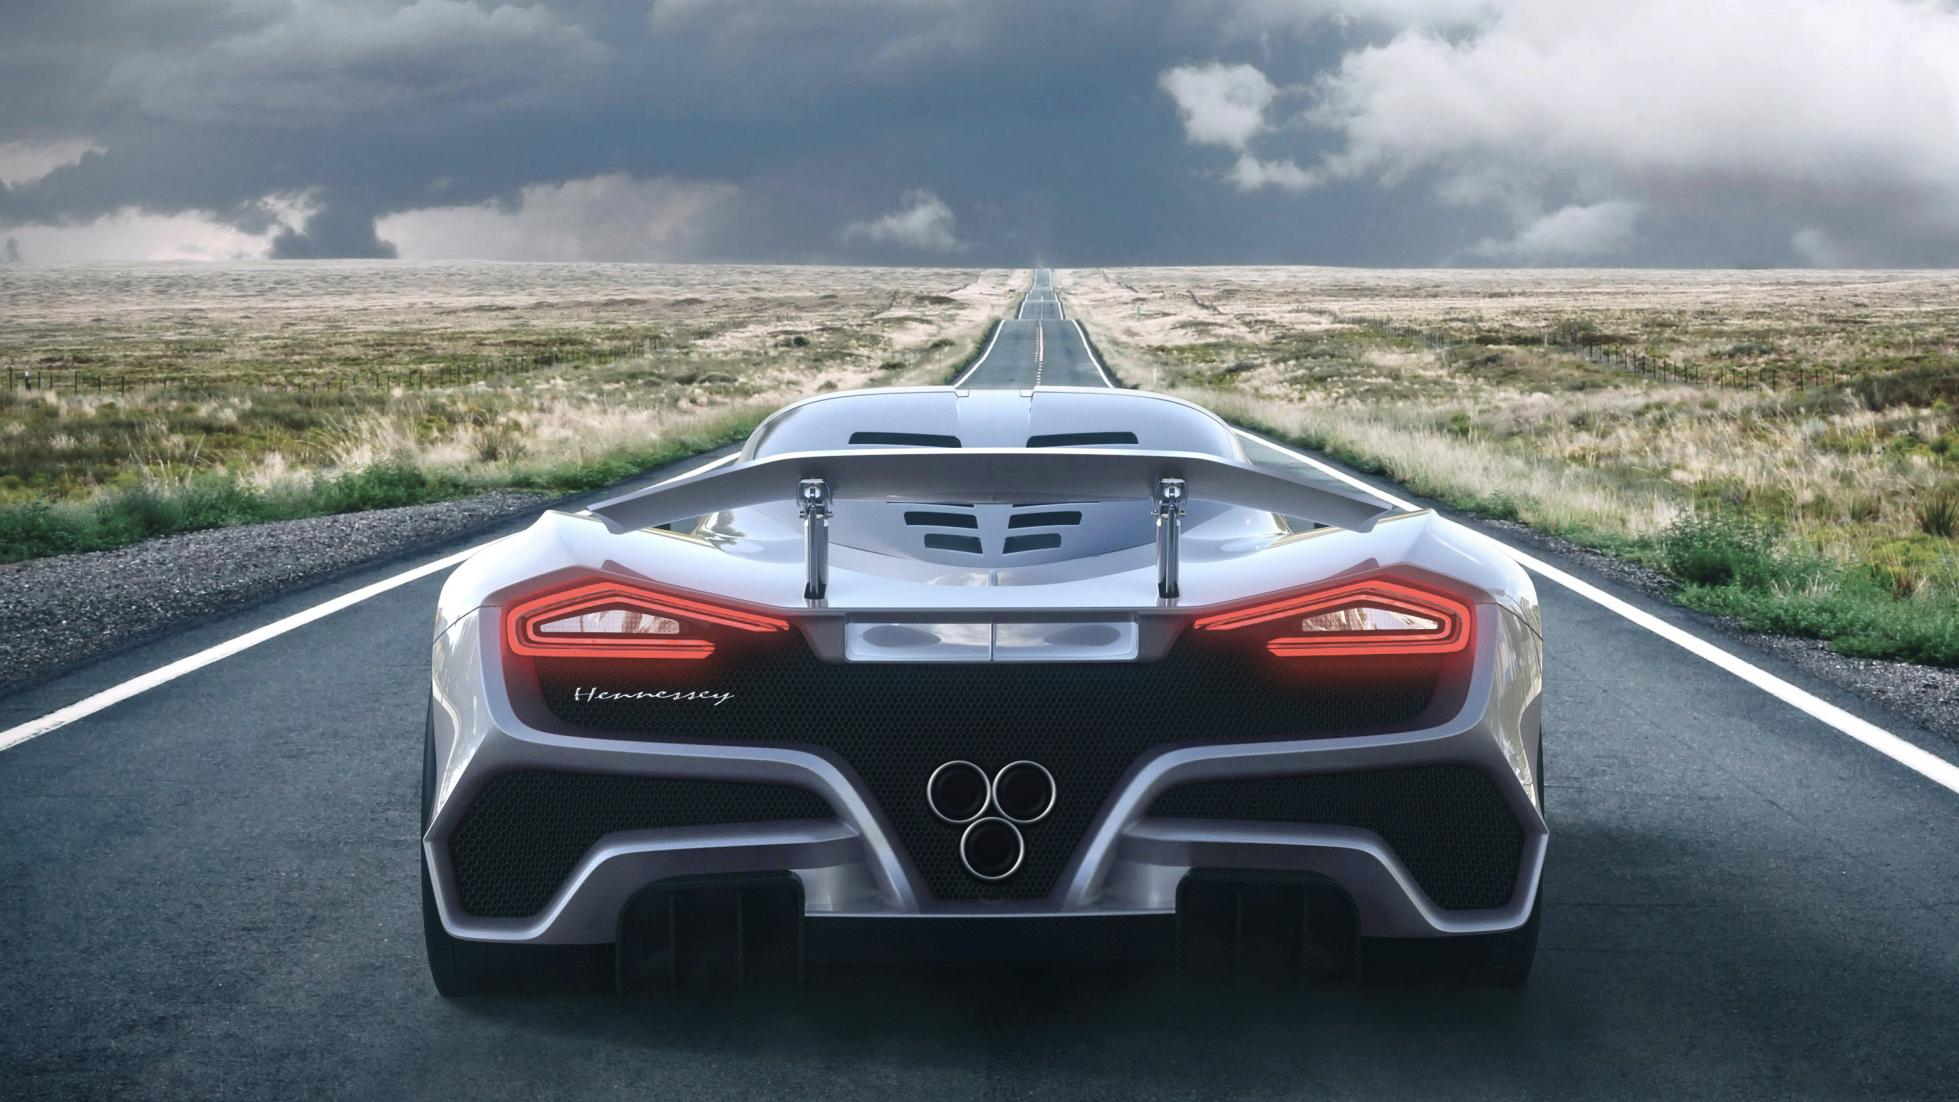 Hennessey Venom F5 Aims to be the Fastest Car in the World